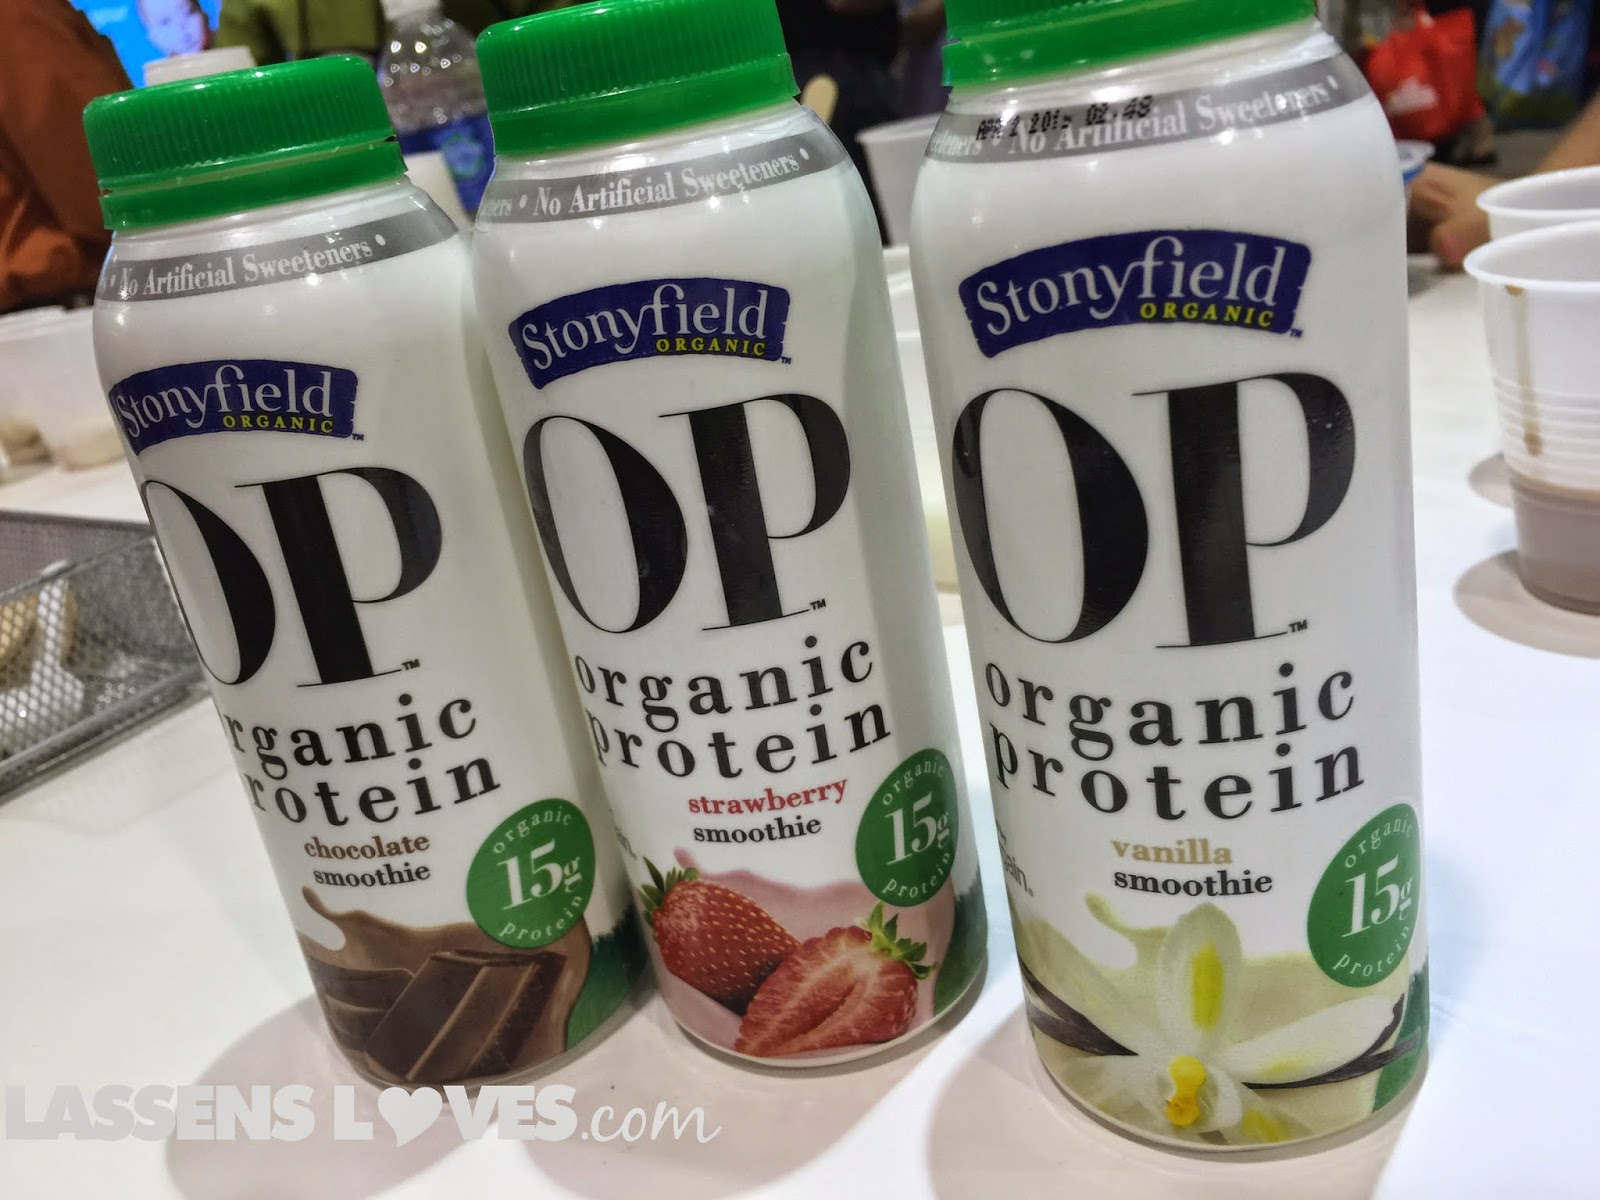 Expo+West+2015, Natural+Foods+Show, New+Natural+Products, stonyfield+o+p, organic+protein+smoothie, O+P+Smoothie